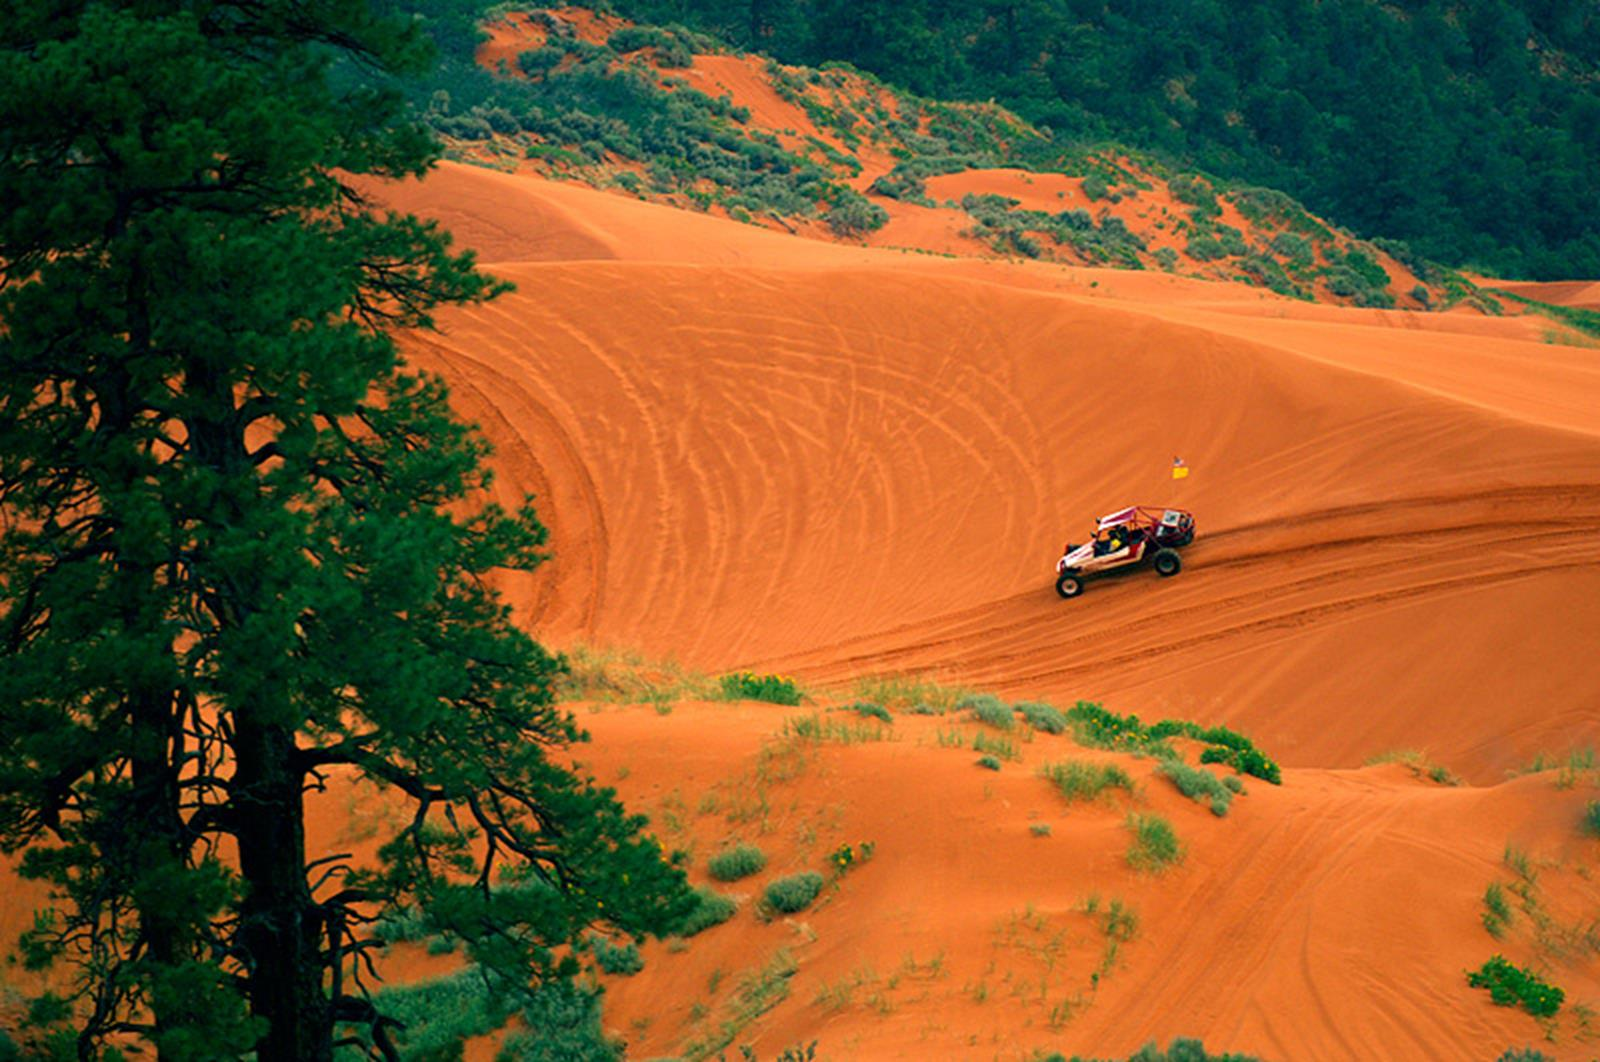 Riding an ATV over the Coral Pink Sand Dunes. Credit: visitsouthernutah.com